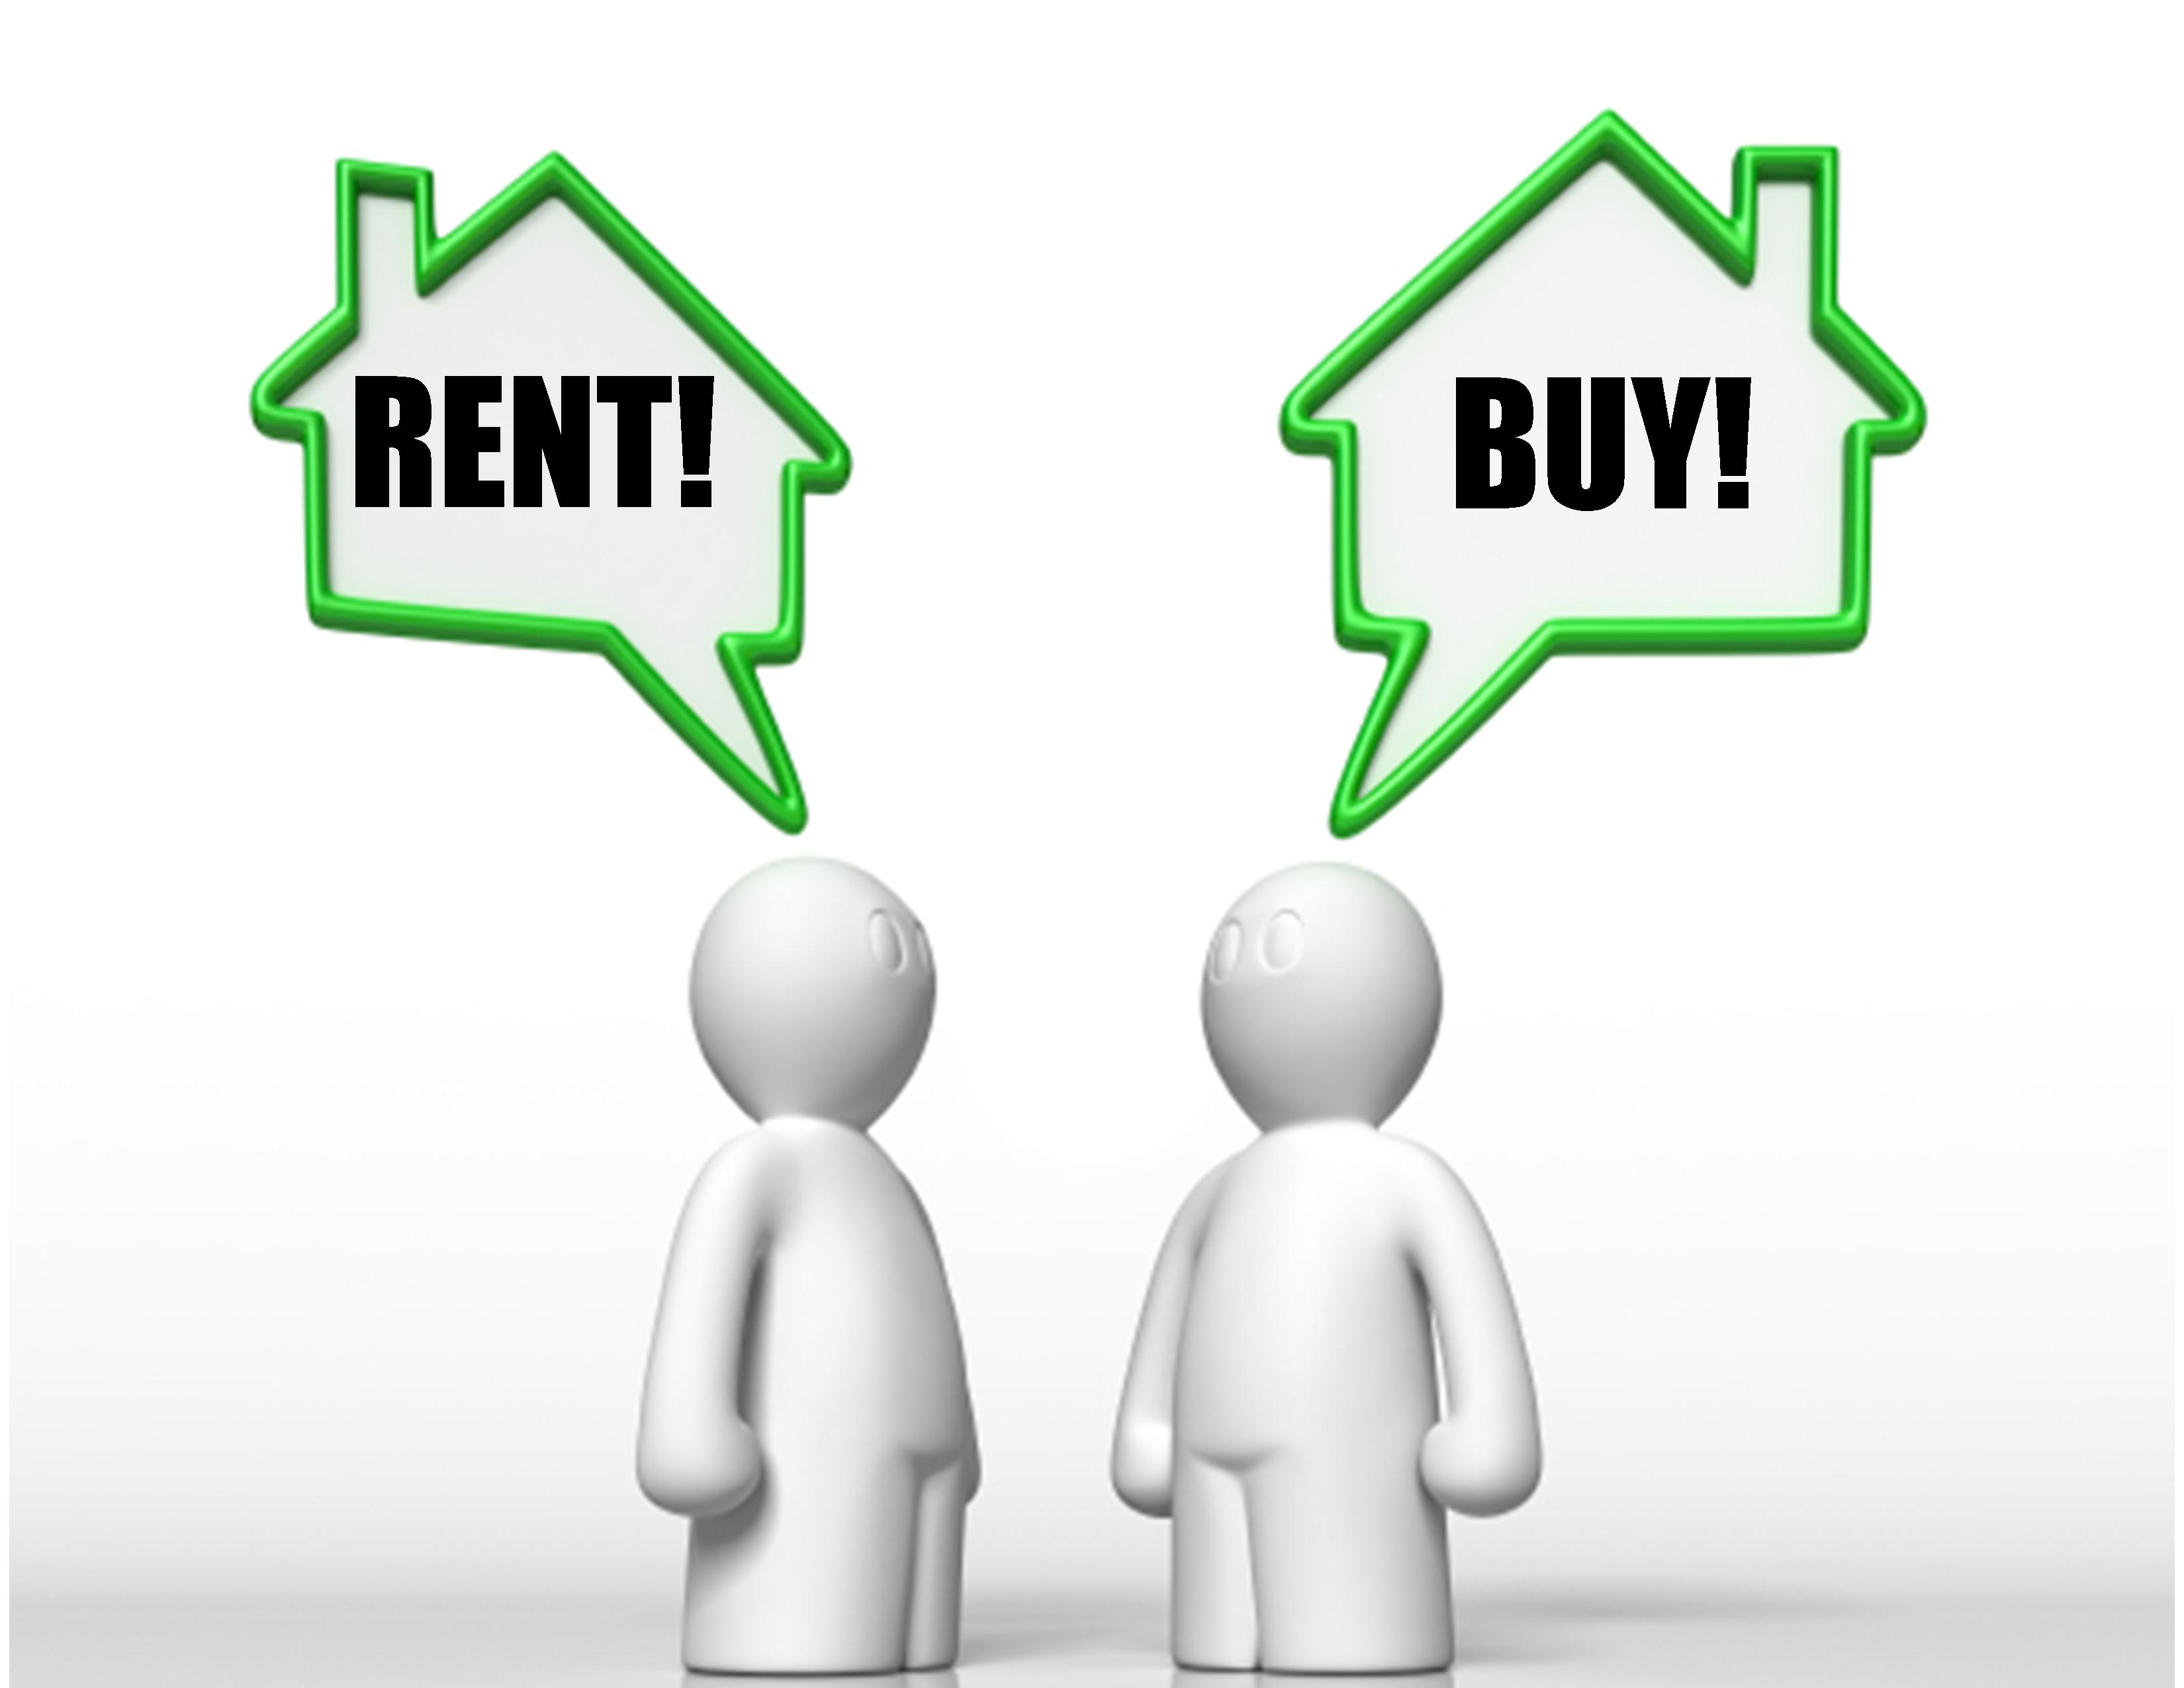 Facts about buying a home - Know The Facts On Buying Vs Renting